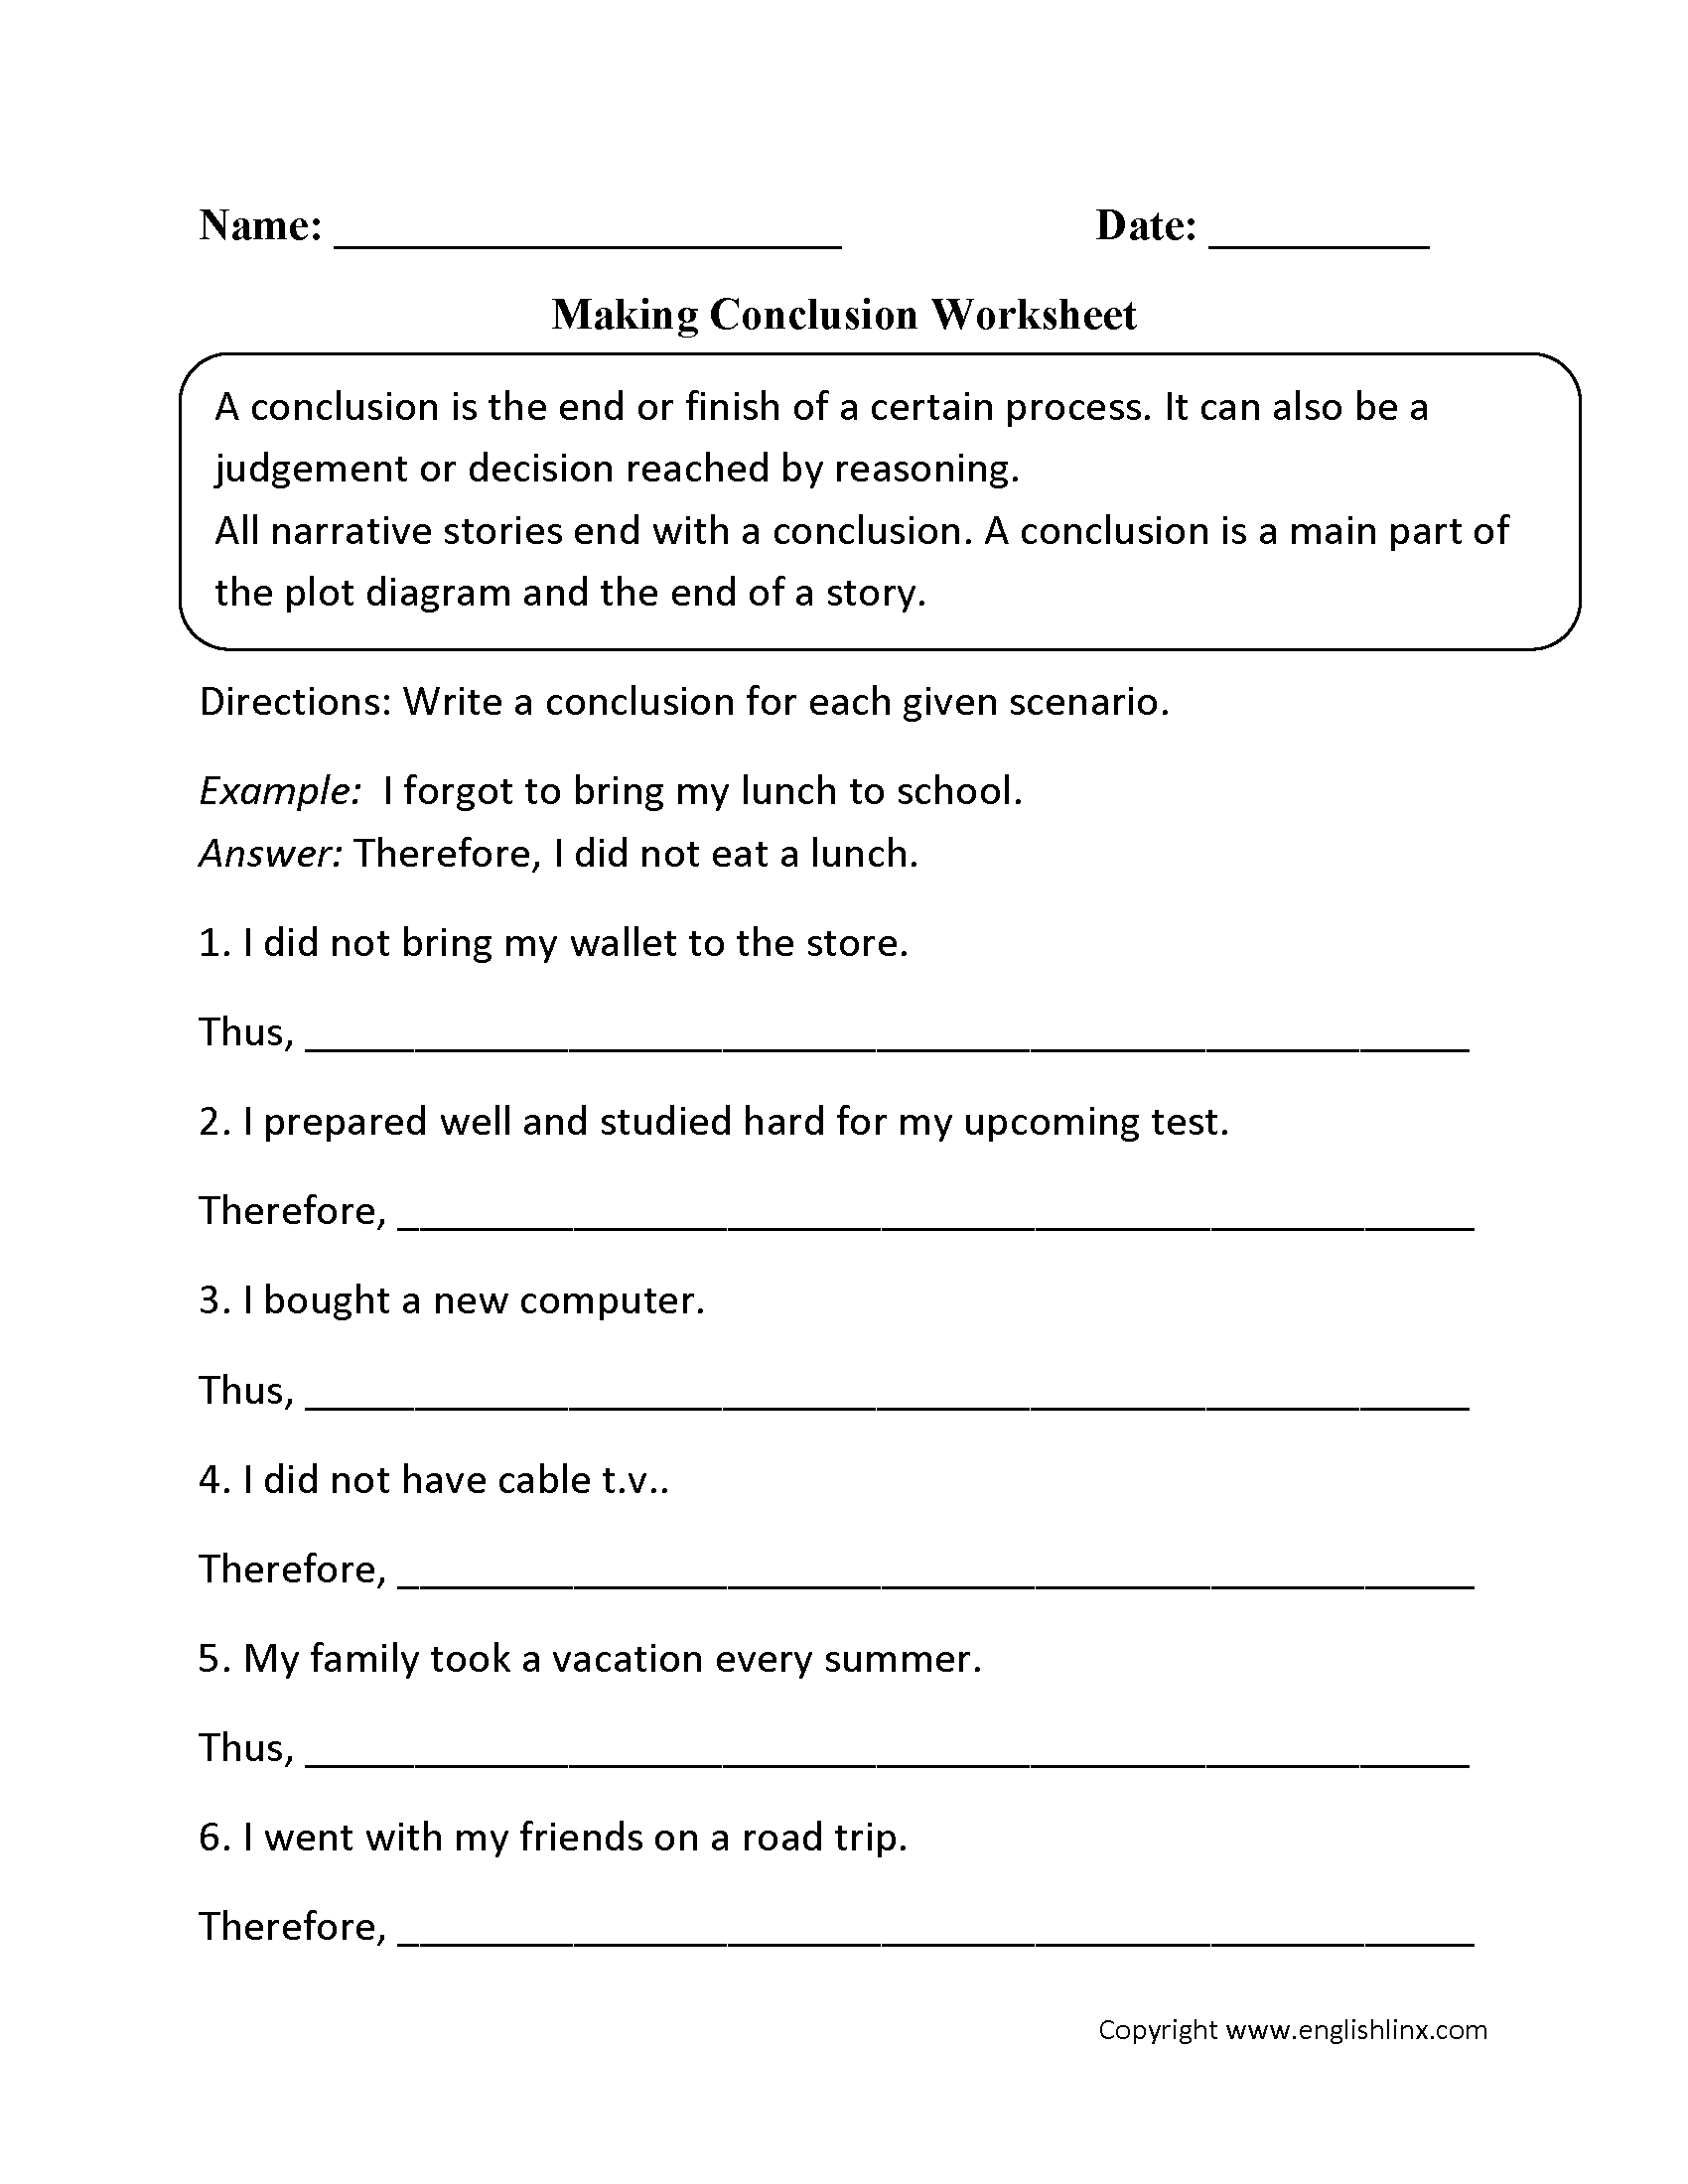 Worksheets 5th Grade Handwriting Worksheets englishlinx com writing conclusions worksheets worksheets